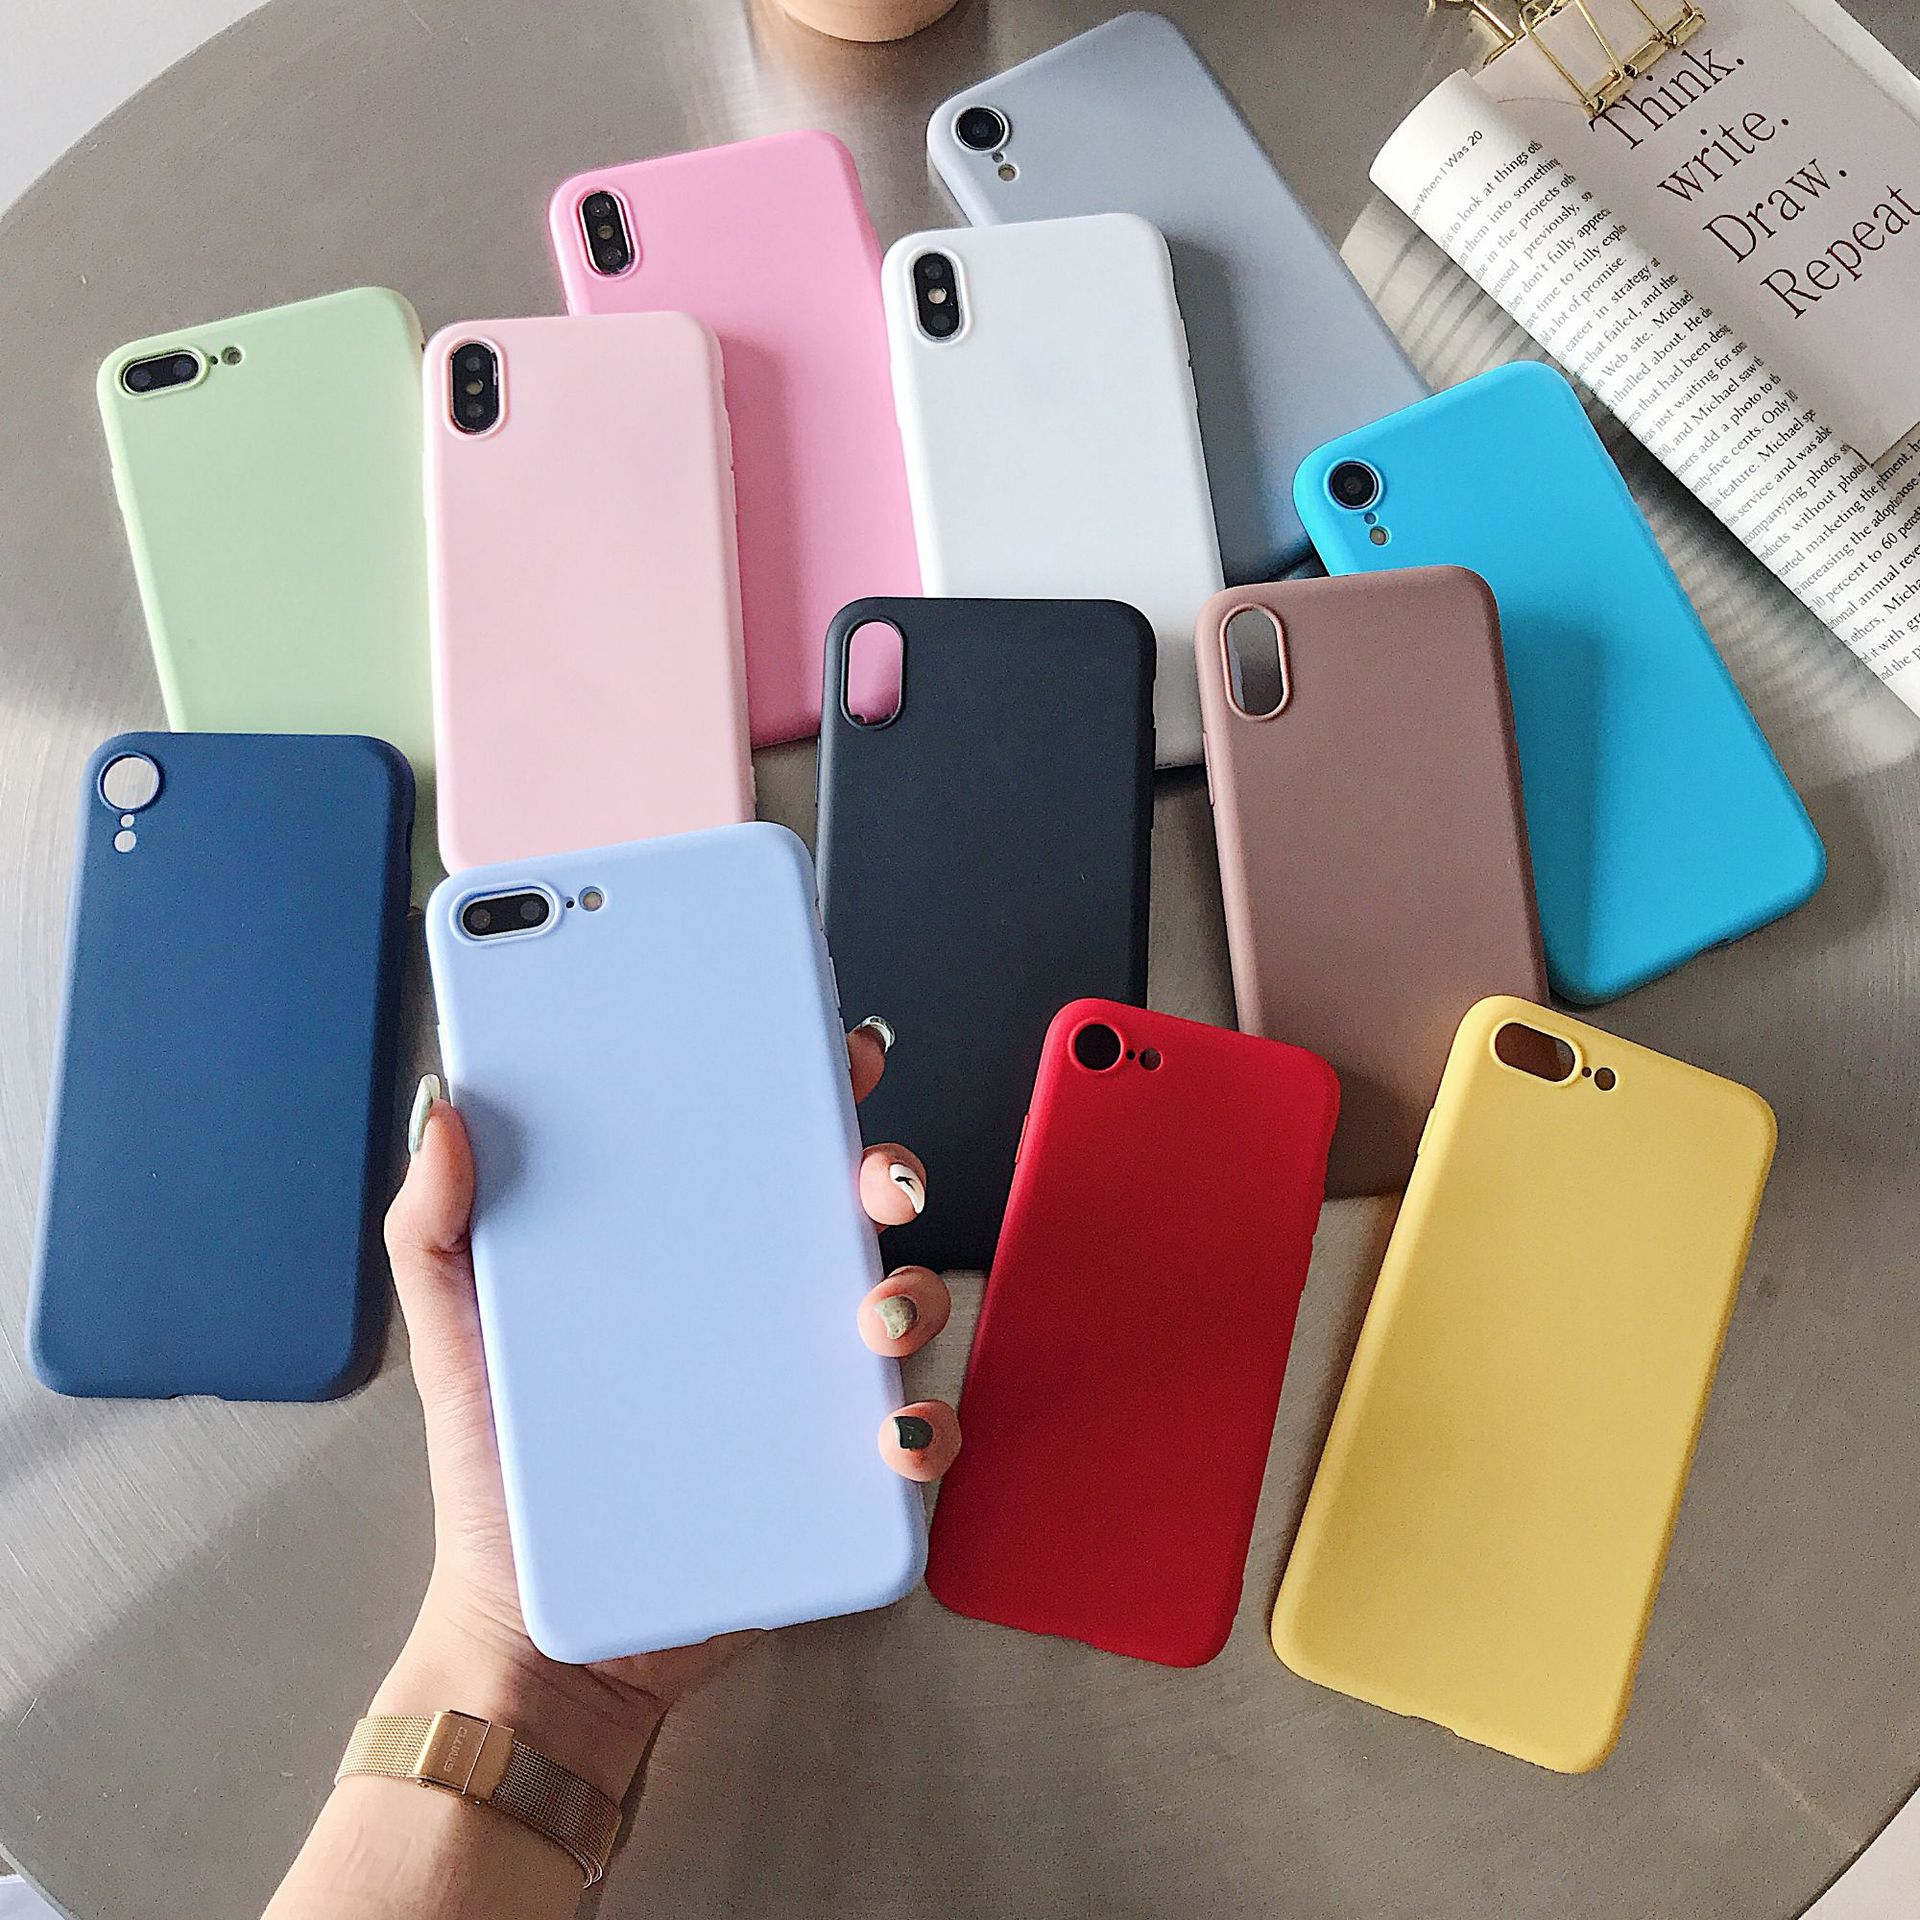 Silicone-Case A50 Candy-Color A20 Samsung A10e For A20e/M10/M20/.. Plus A9 A750/a920